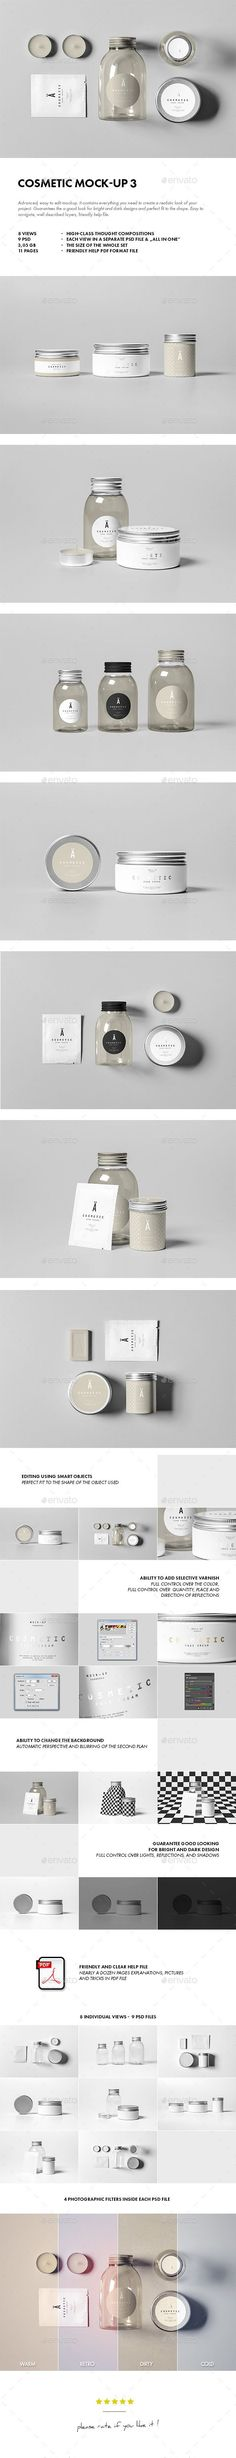 Cosmetic Mock-up 3 - Beauty Packaging